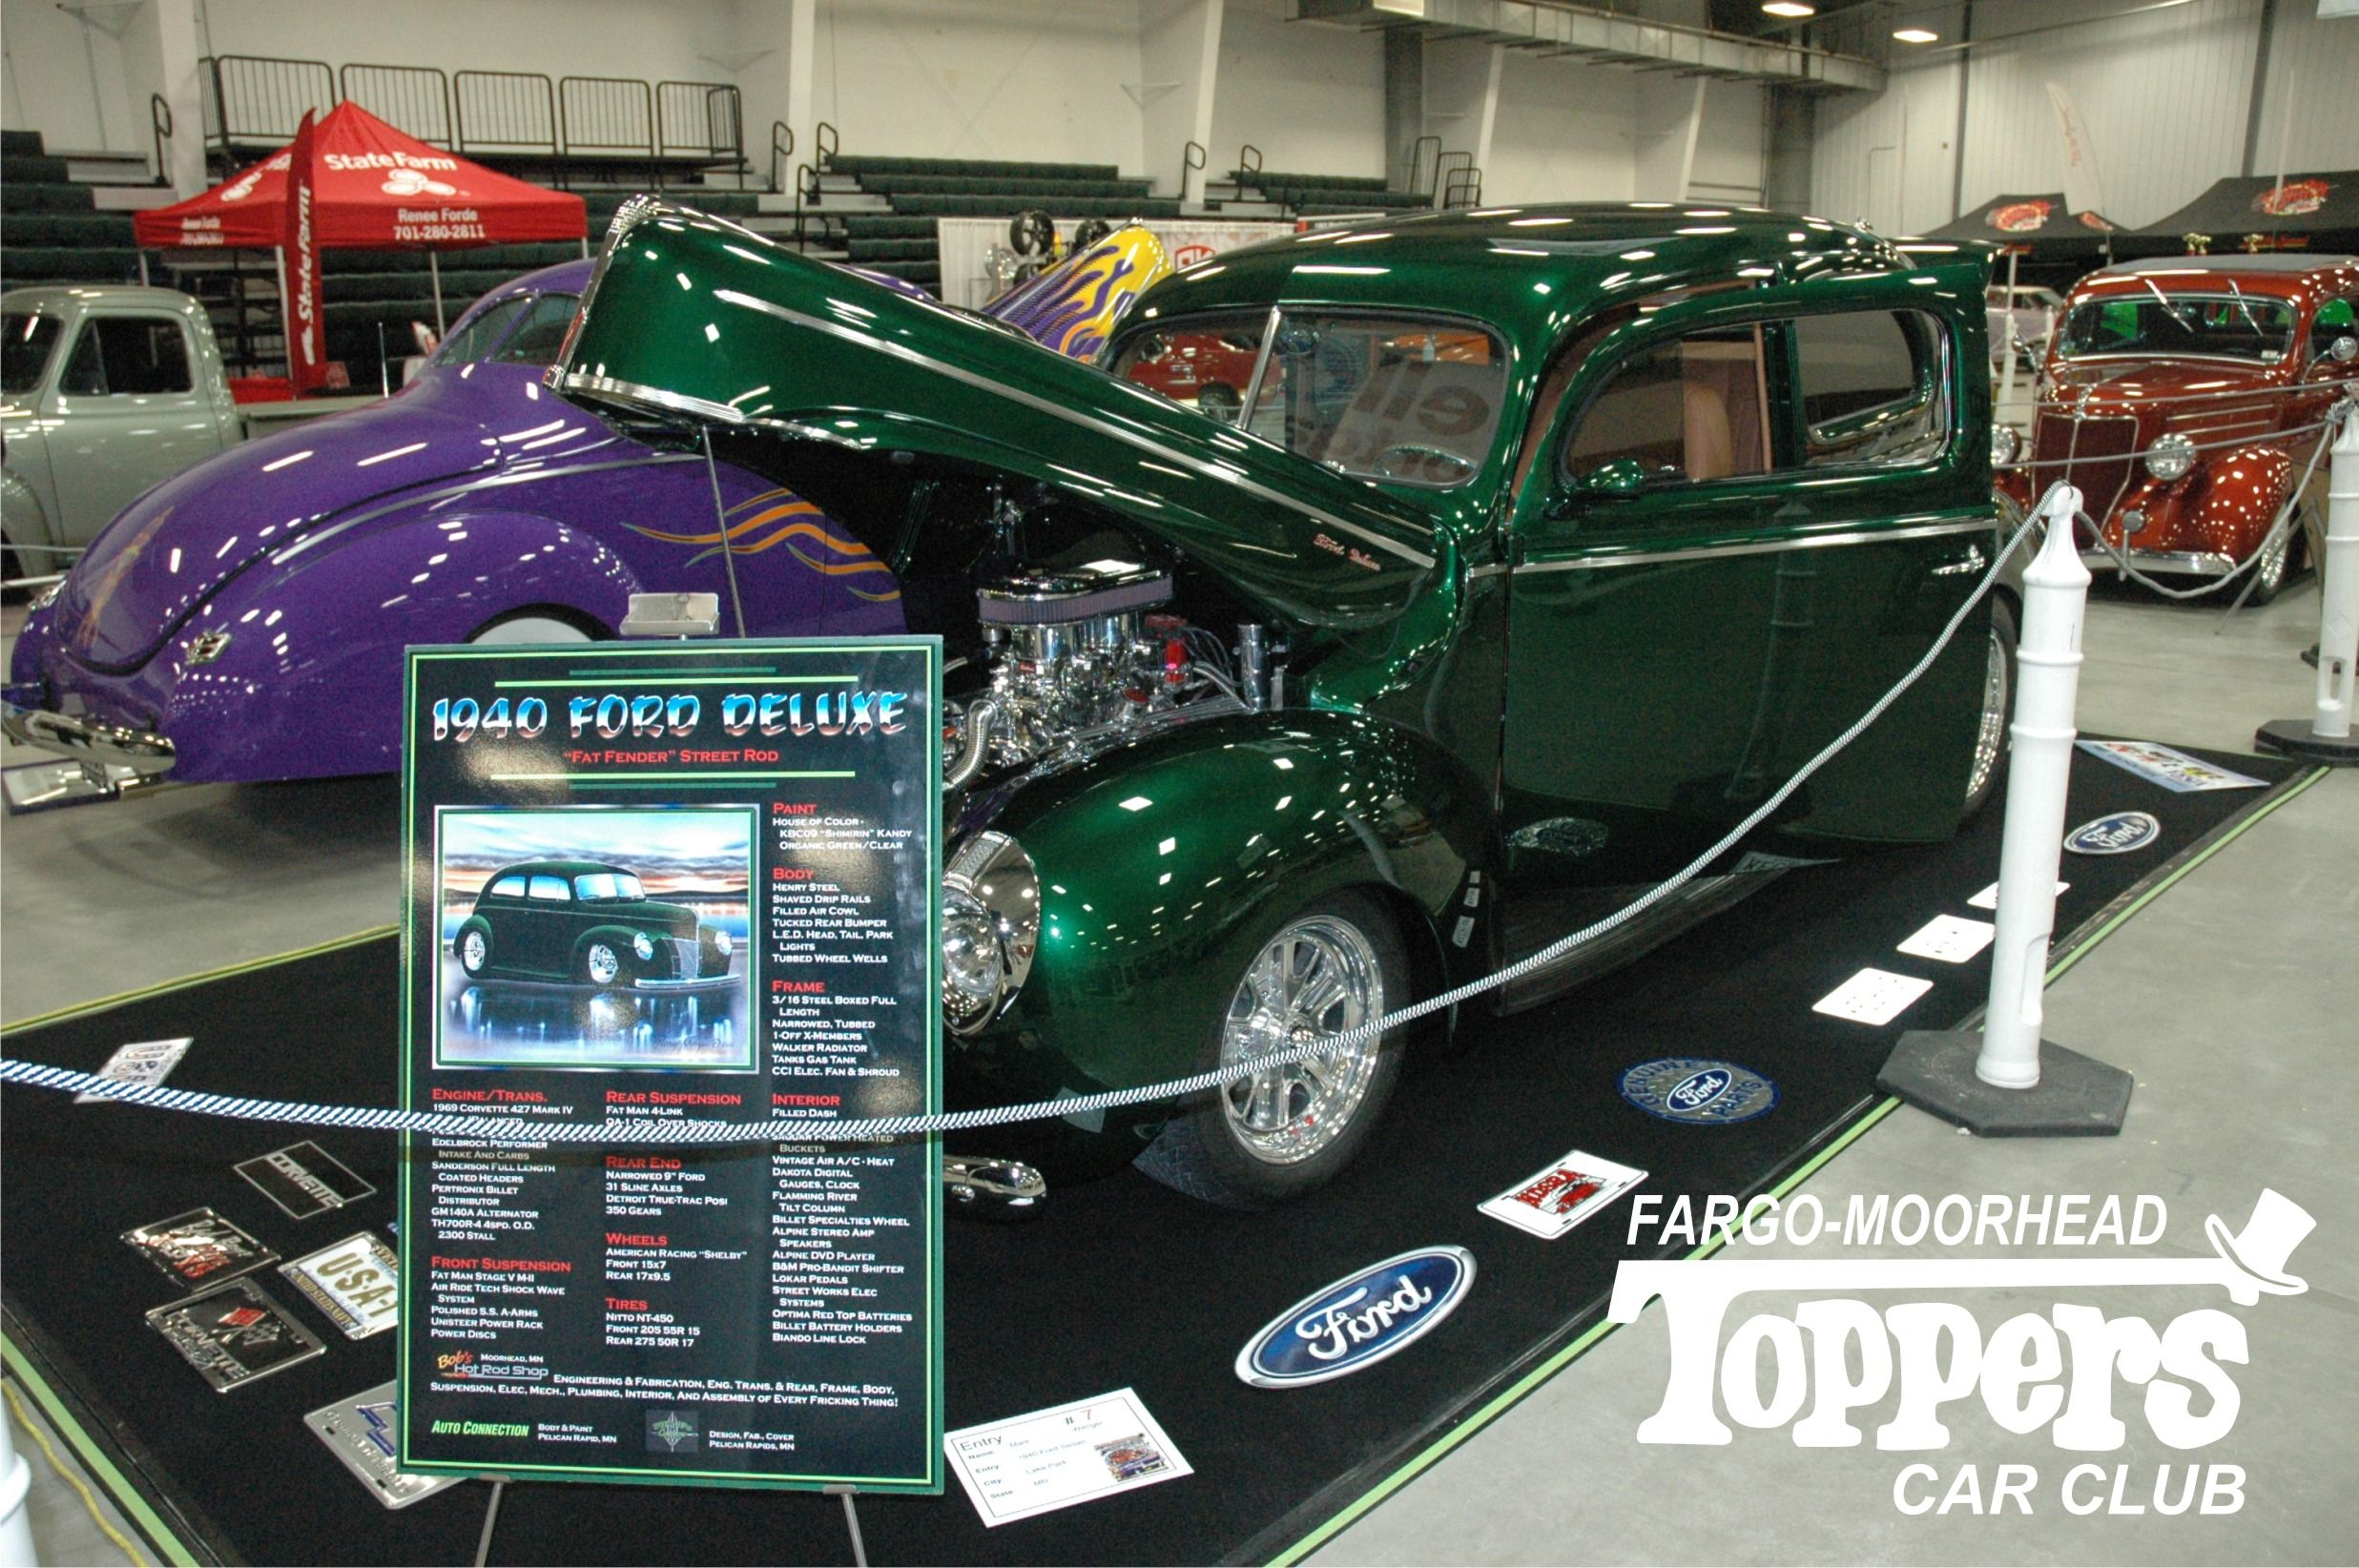 1940 Ford Deluxe - Kelly Green Toppers Car Club - Annual Car Show ...